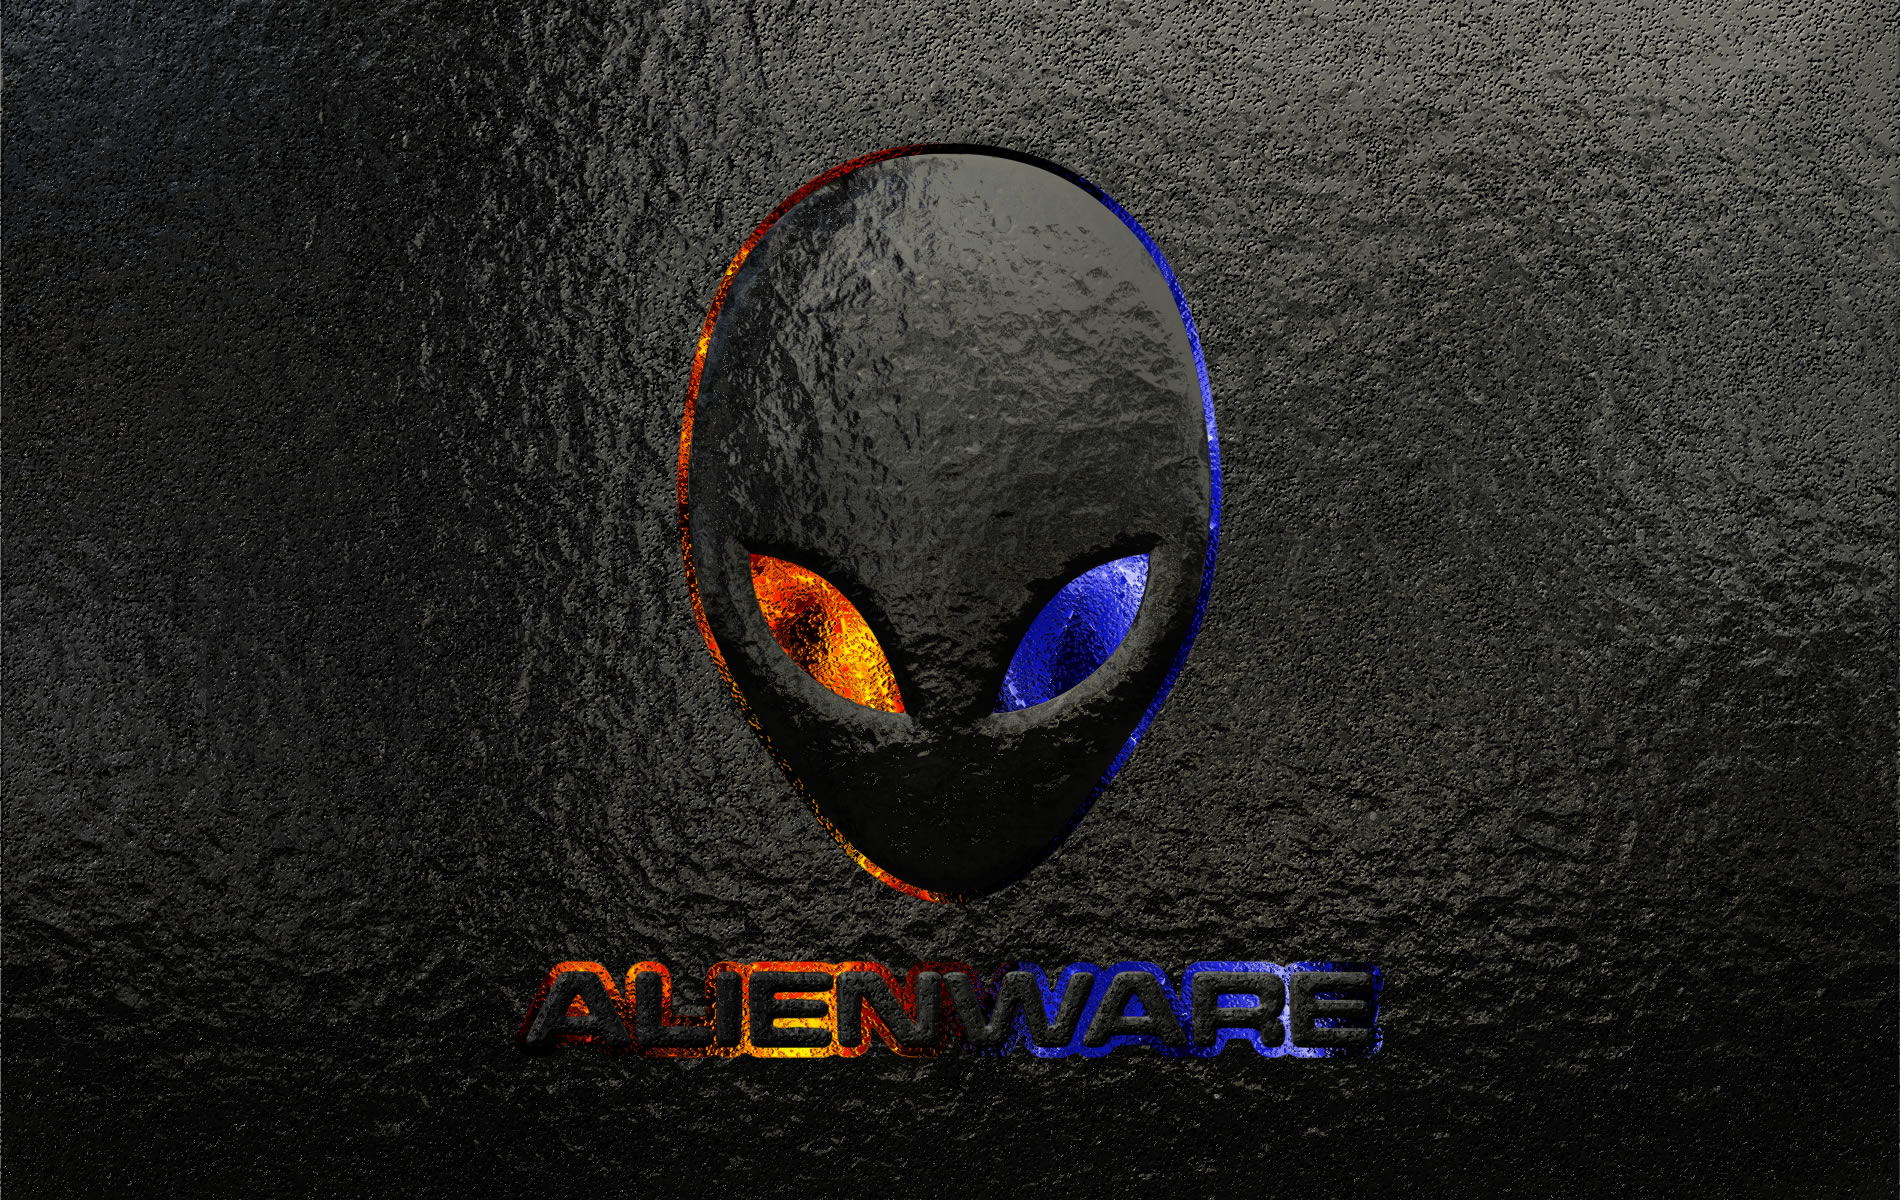 Alienware Computer Wallpapers Desktop Backgrounds 1900x1200 ID 1900x1200